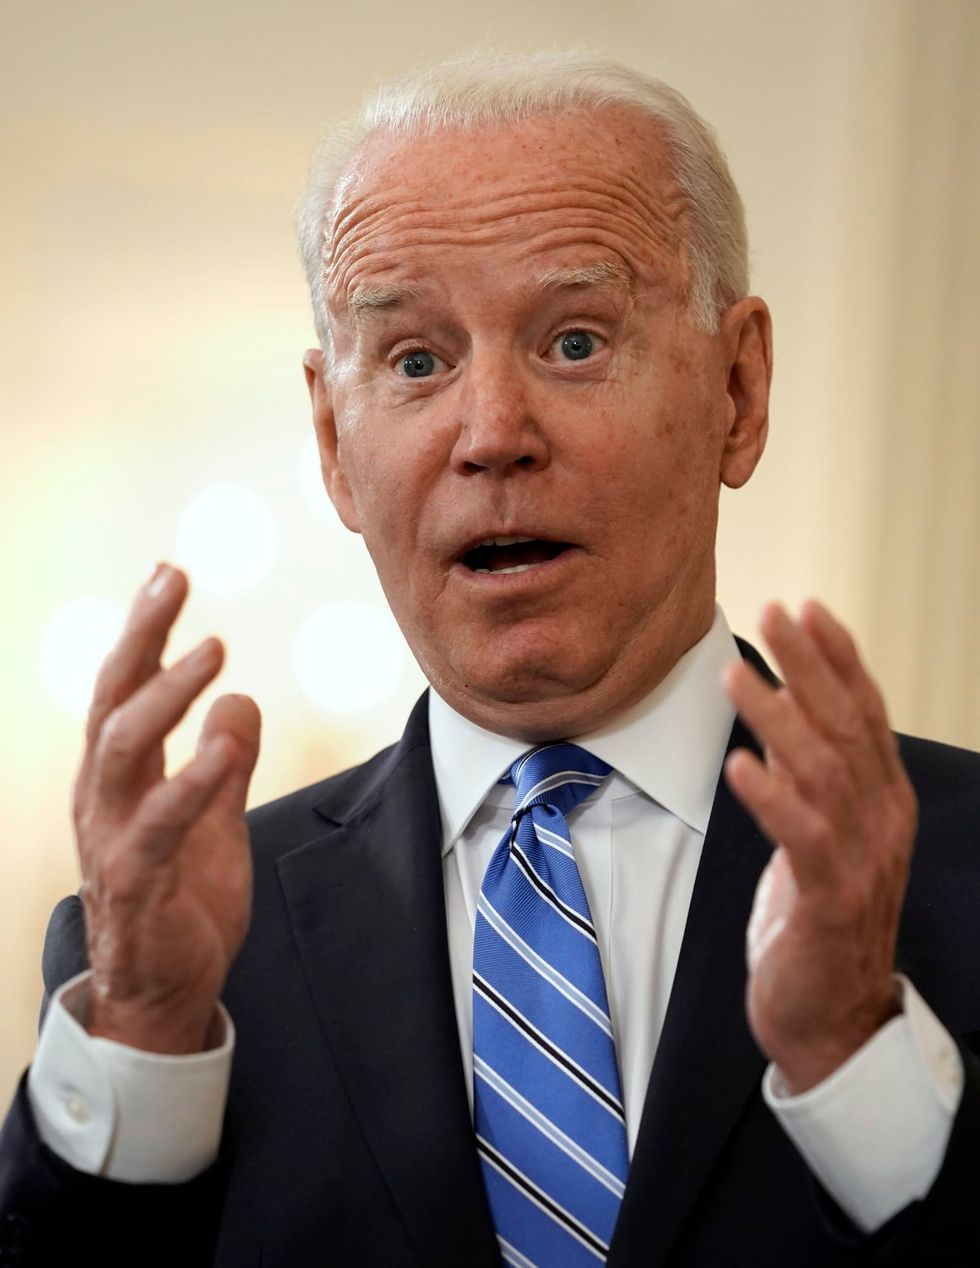 Biden vows to tame inflation and boasts of new economic boom: 'We will remain vigilant'